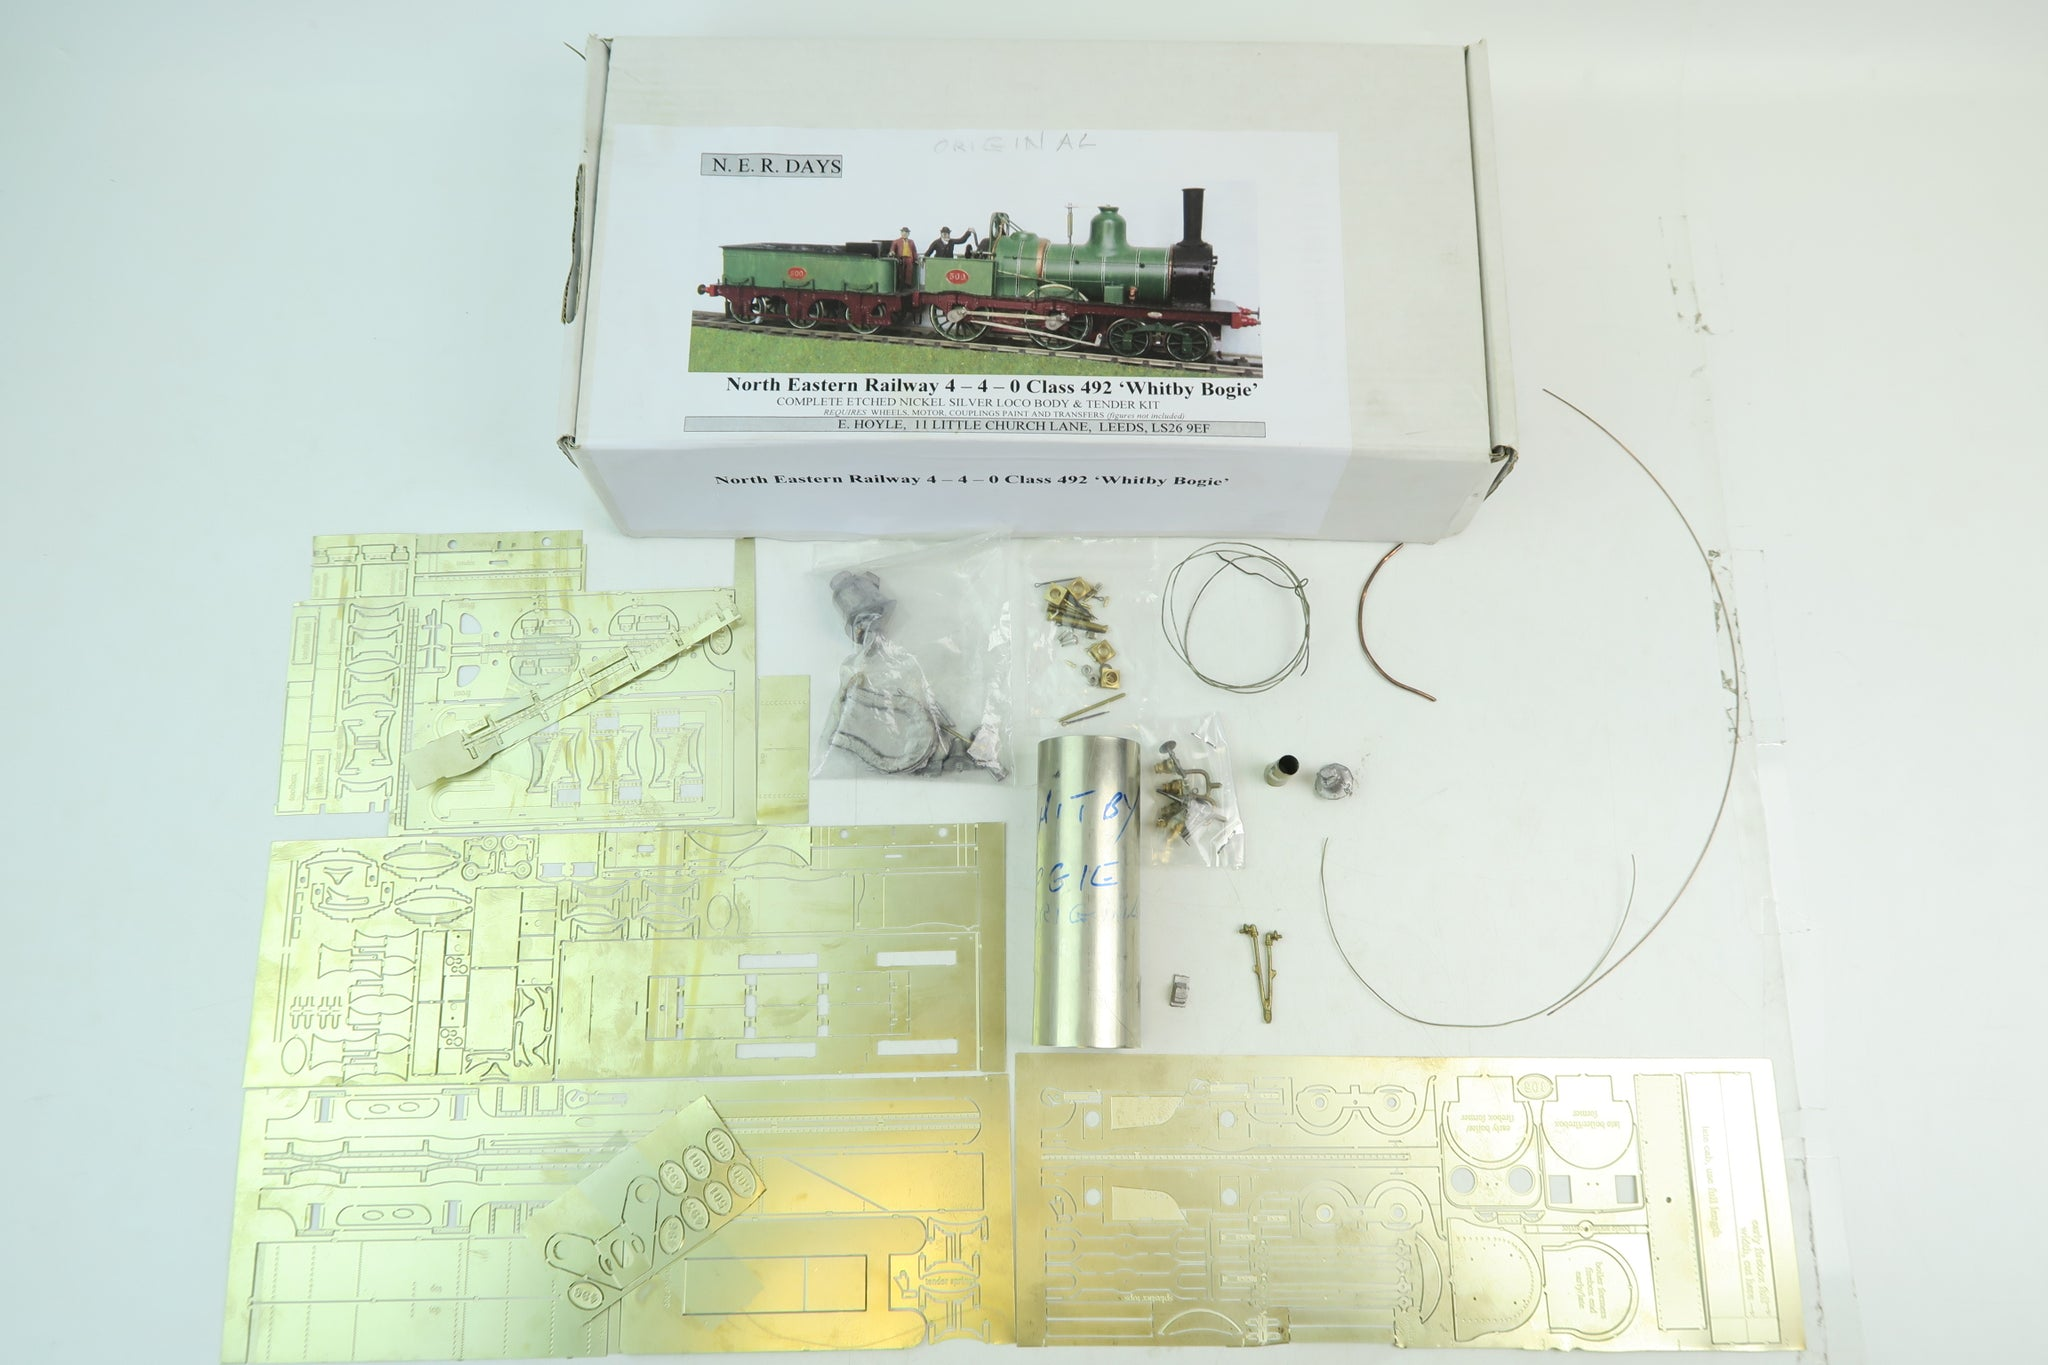 NER Days 7mm Finescale O Gauge NER Class 492 4-4-0 'Whitby Bogie'